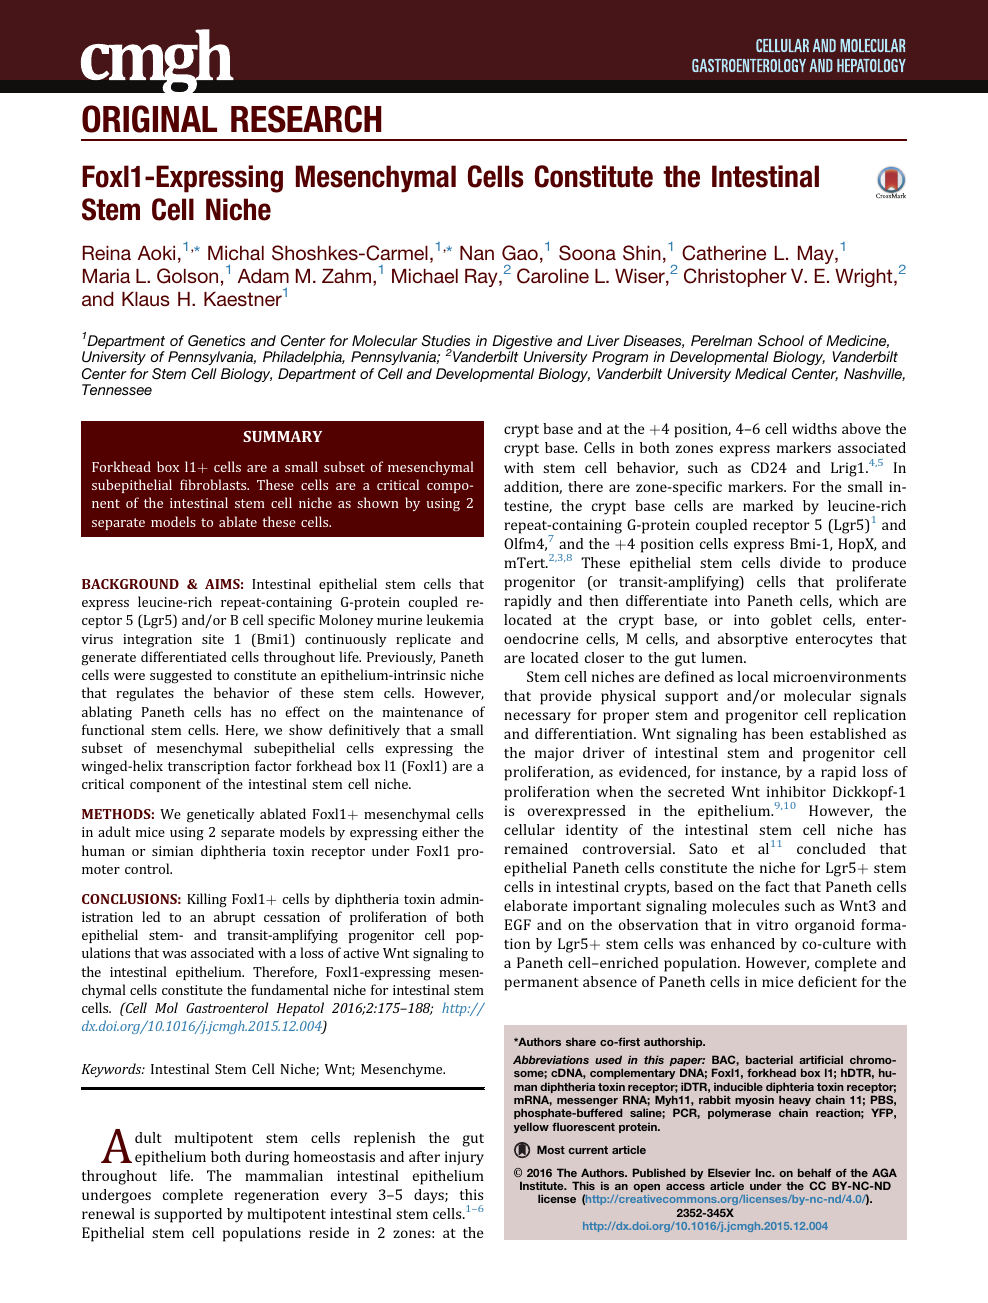 Foxl1-Expressing Mesenchymal Cells Constitute the Intestinal